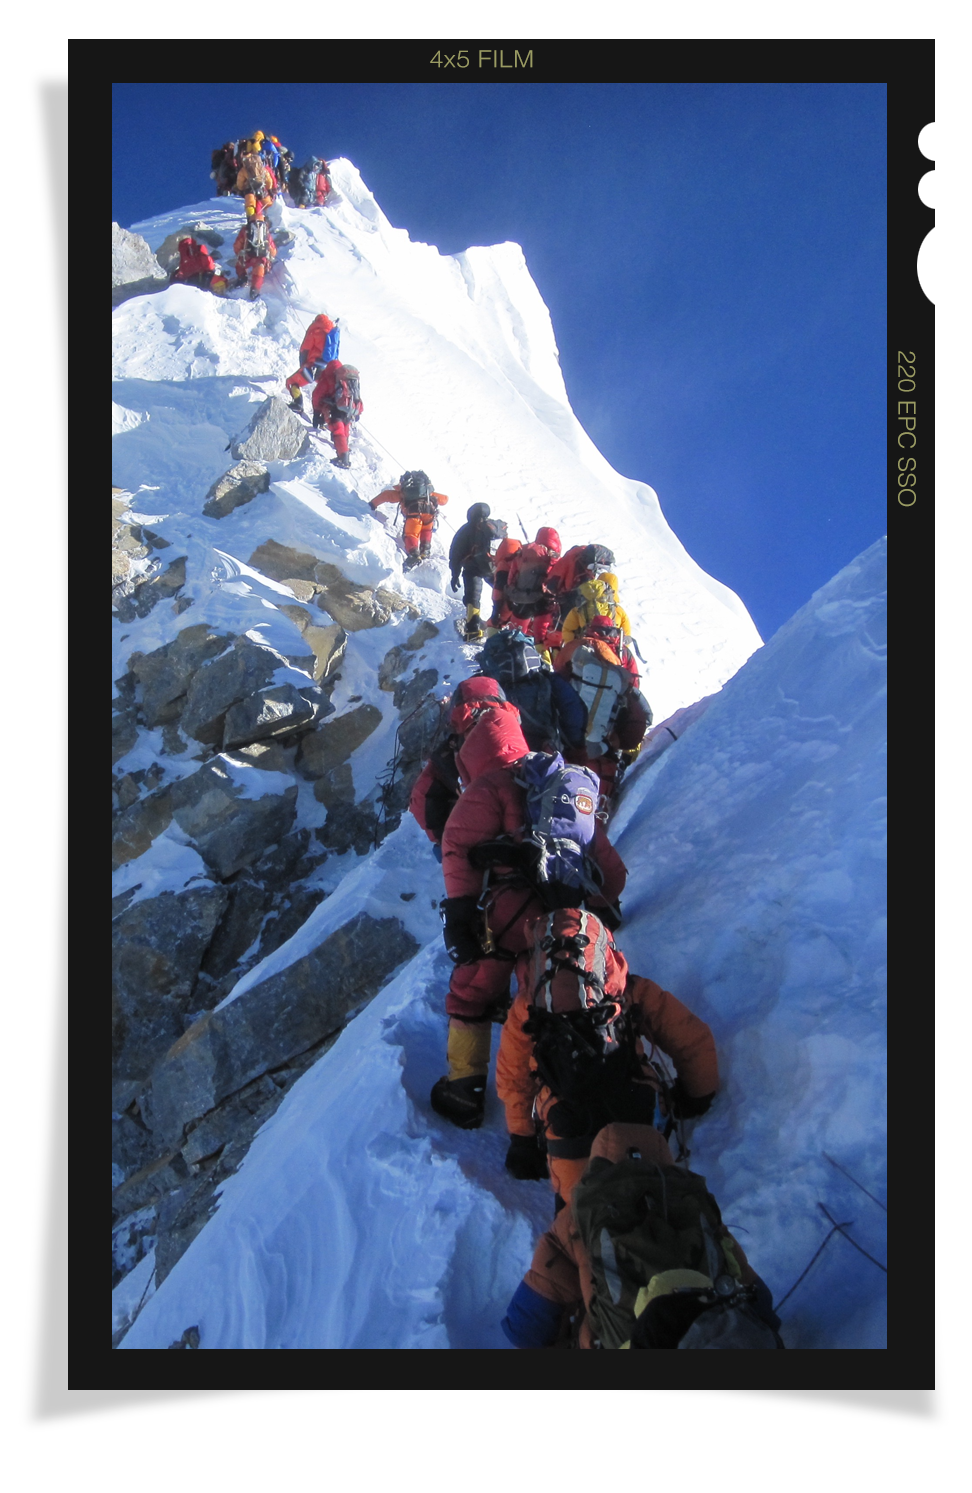 Gordon ascending Everest's famed Hillary Step.